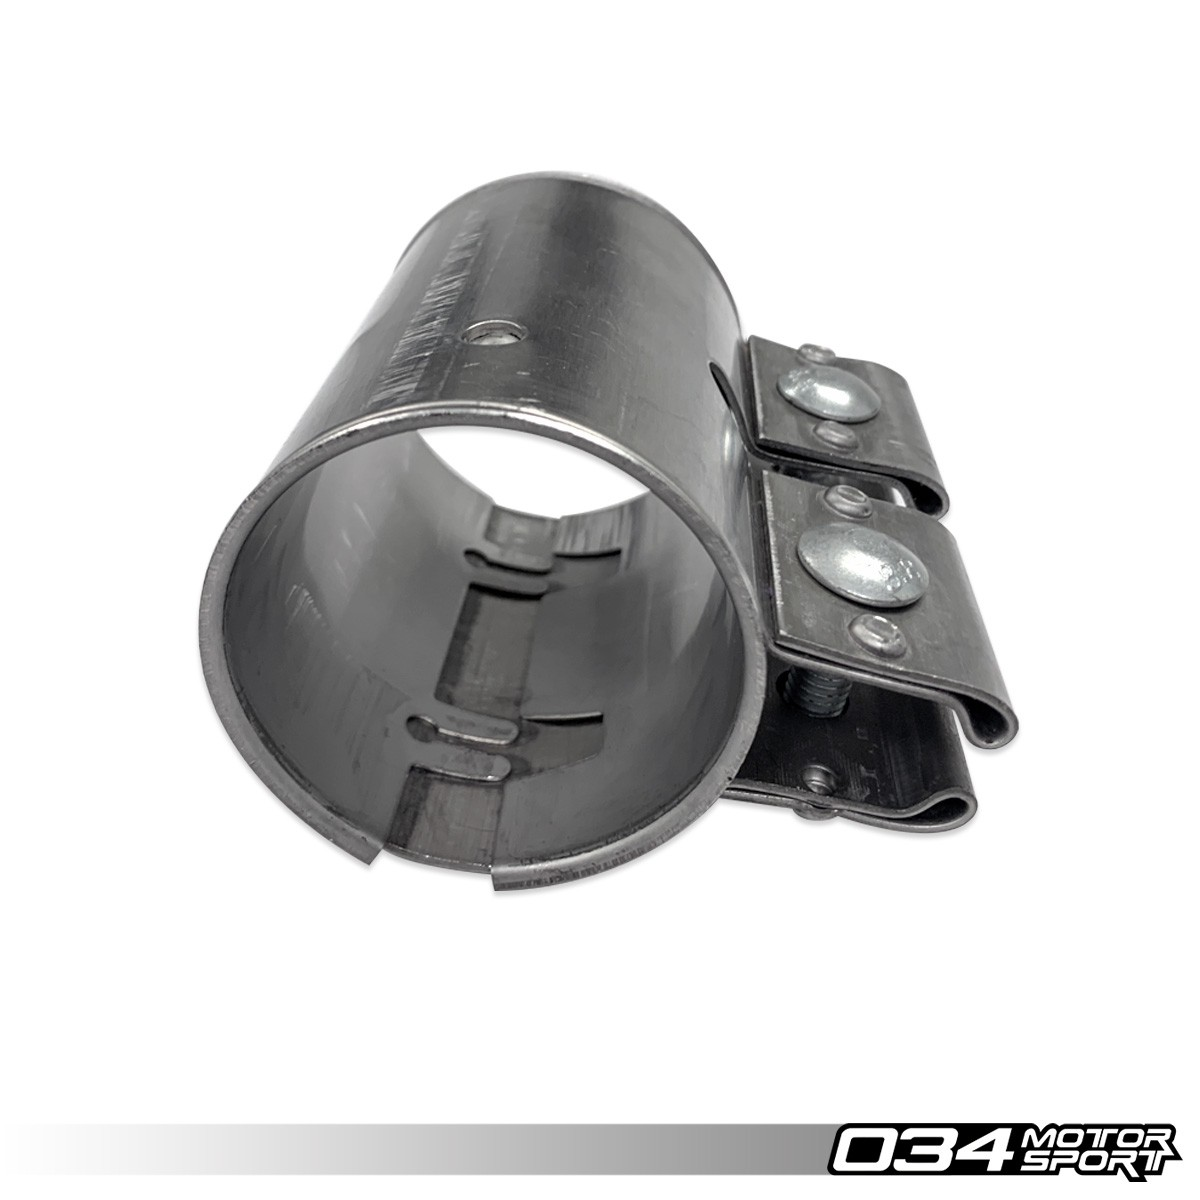 60mm Exhaust Clamp for Audi C7 S6/S7 034-105-D301